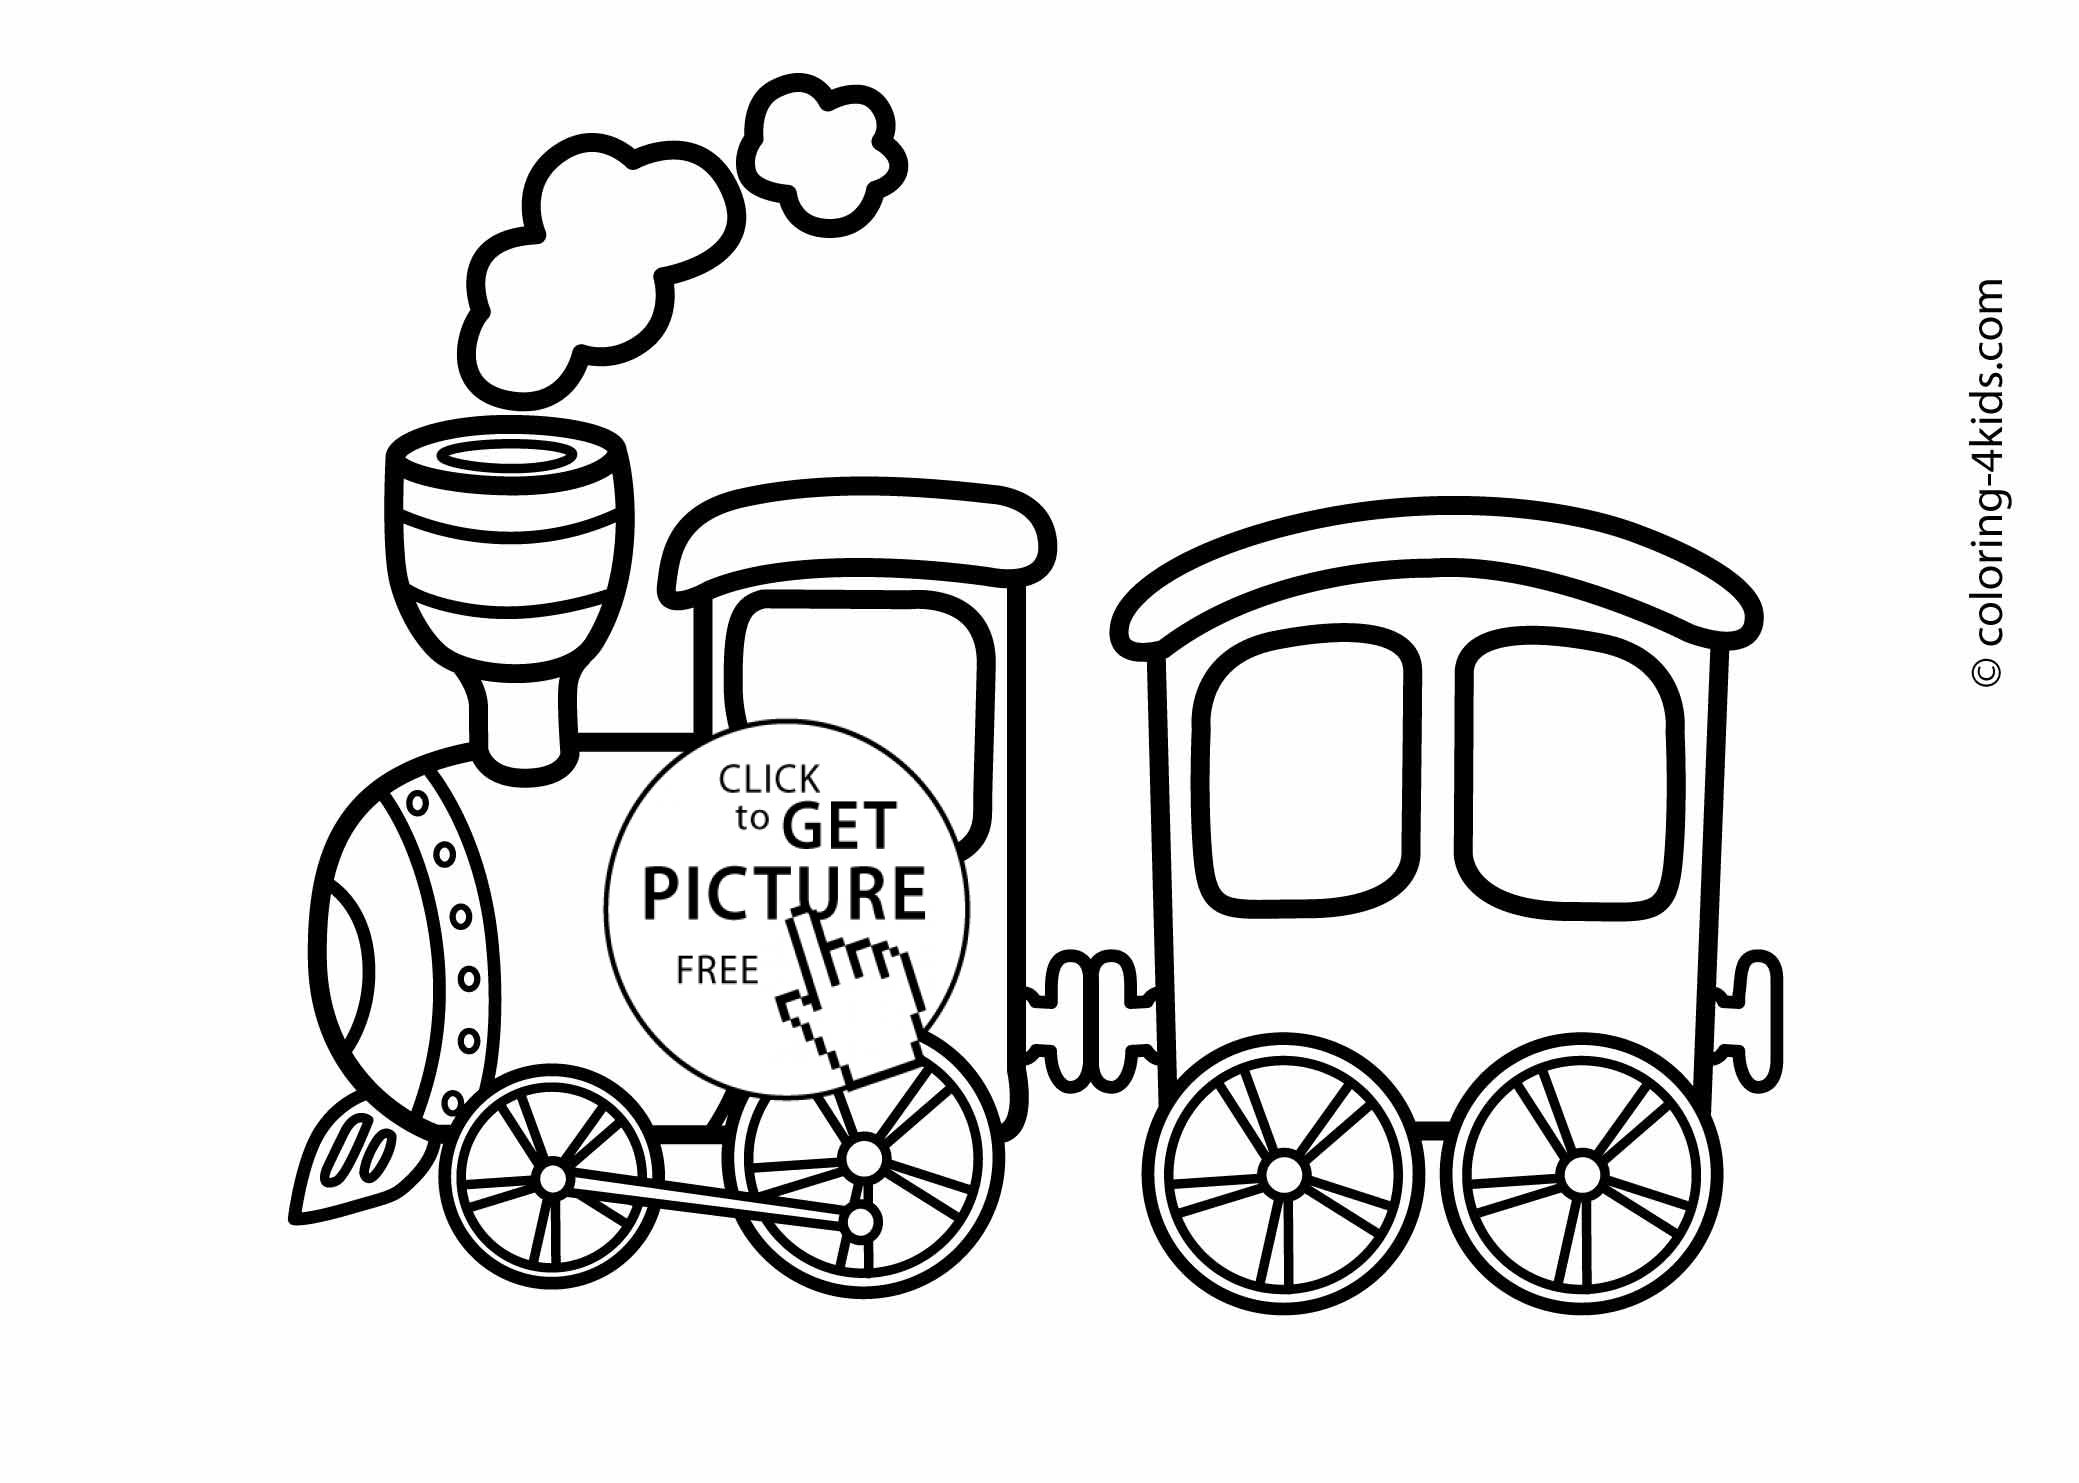 Train transportation coloring pages for kids, printable